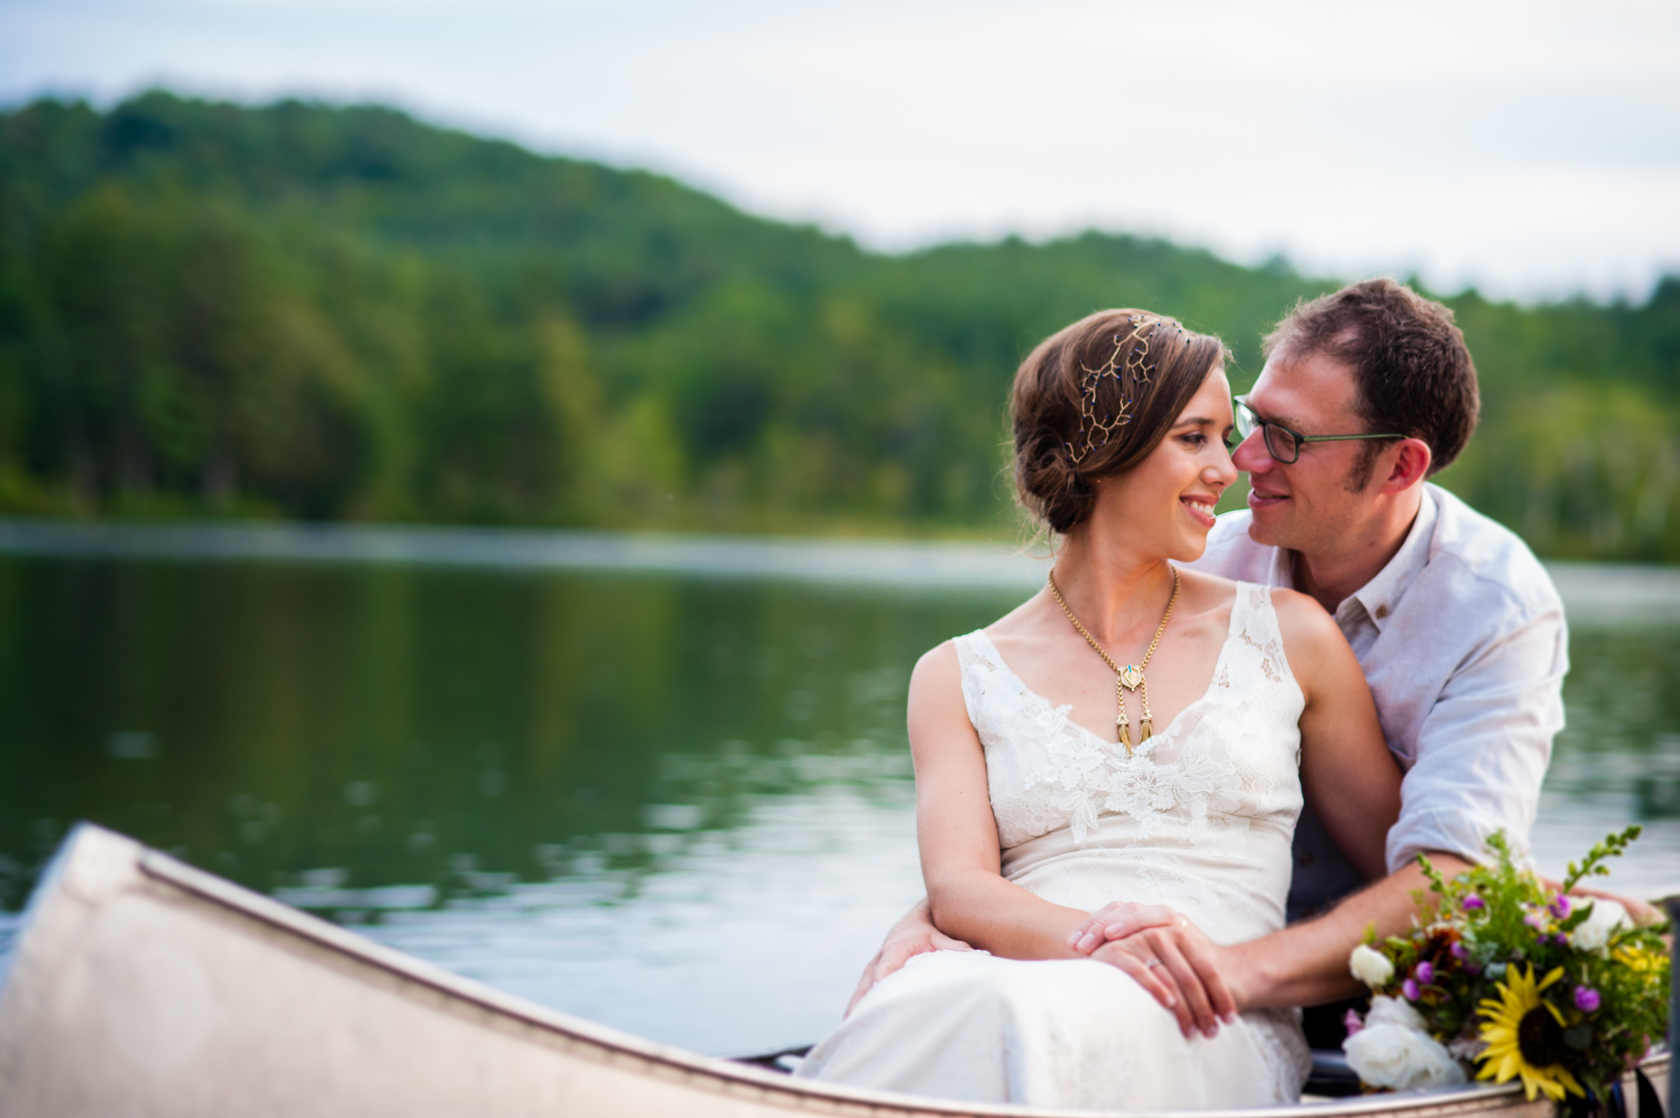 newly married couple snuggles up together in a canoe on their wedding day